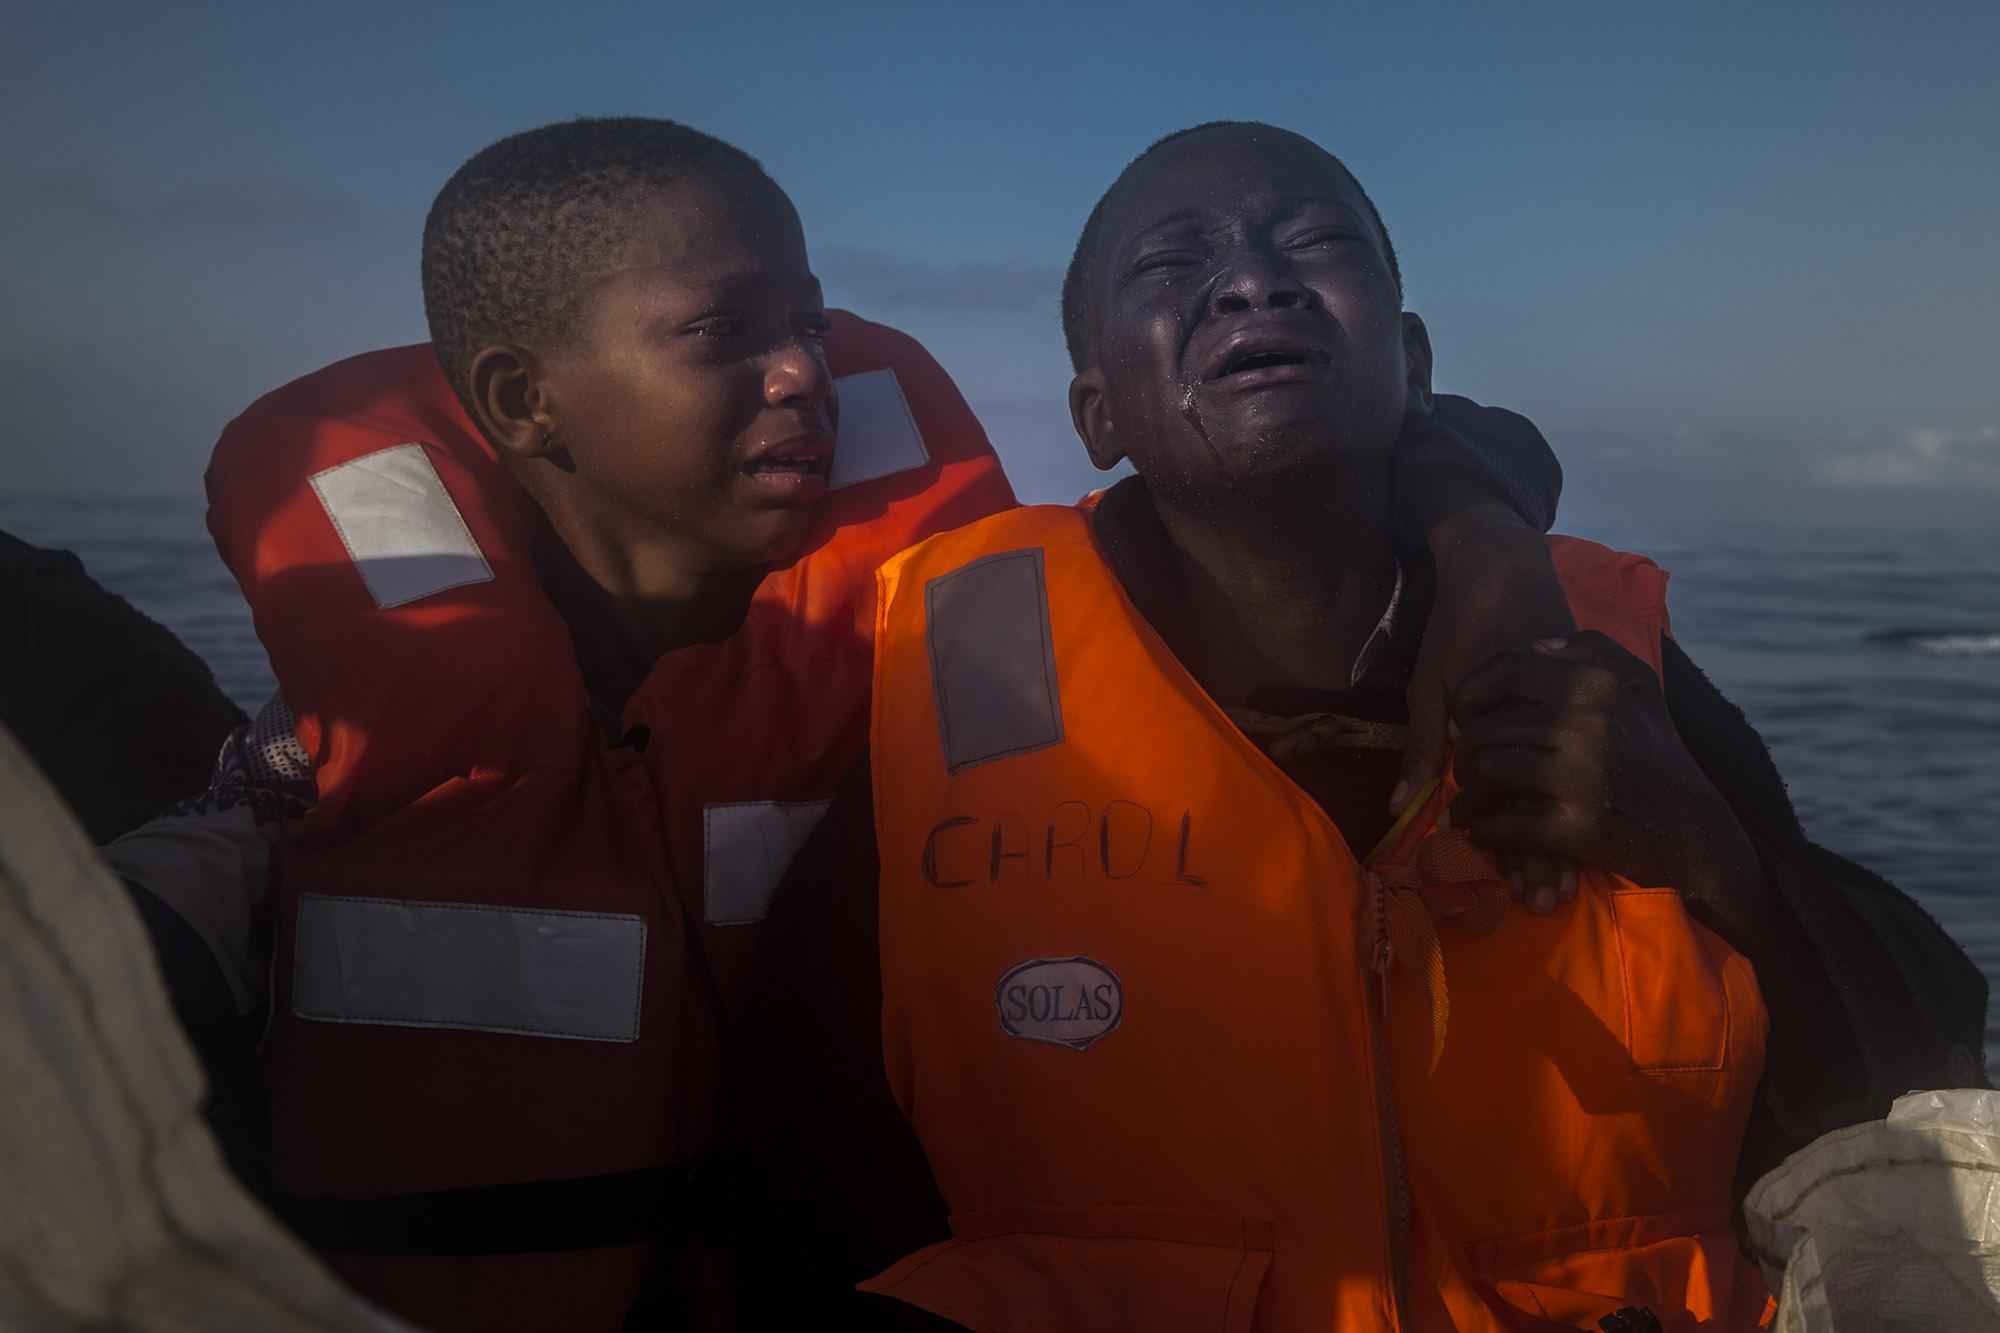 A 11-year-old girl from Nigeria, (left), who said her mother died in Libya, cries next to her 10-year-old brother, aboard a rescue boat assisted by an NGO, after sailing for hours aboard an overcrowded rubber boat with other refugees and migrants, during a rescue operation on the Mediterranean Sea, about 23 kilometers (14 miles) north of Sabratha, Libya, on Thursday, July 28, 2016. (© Santi Palacios)